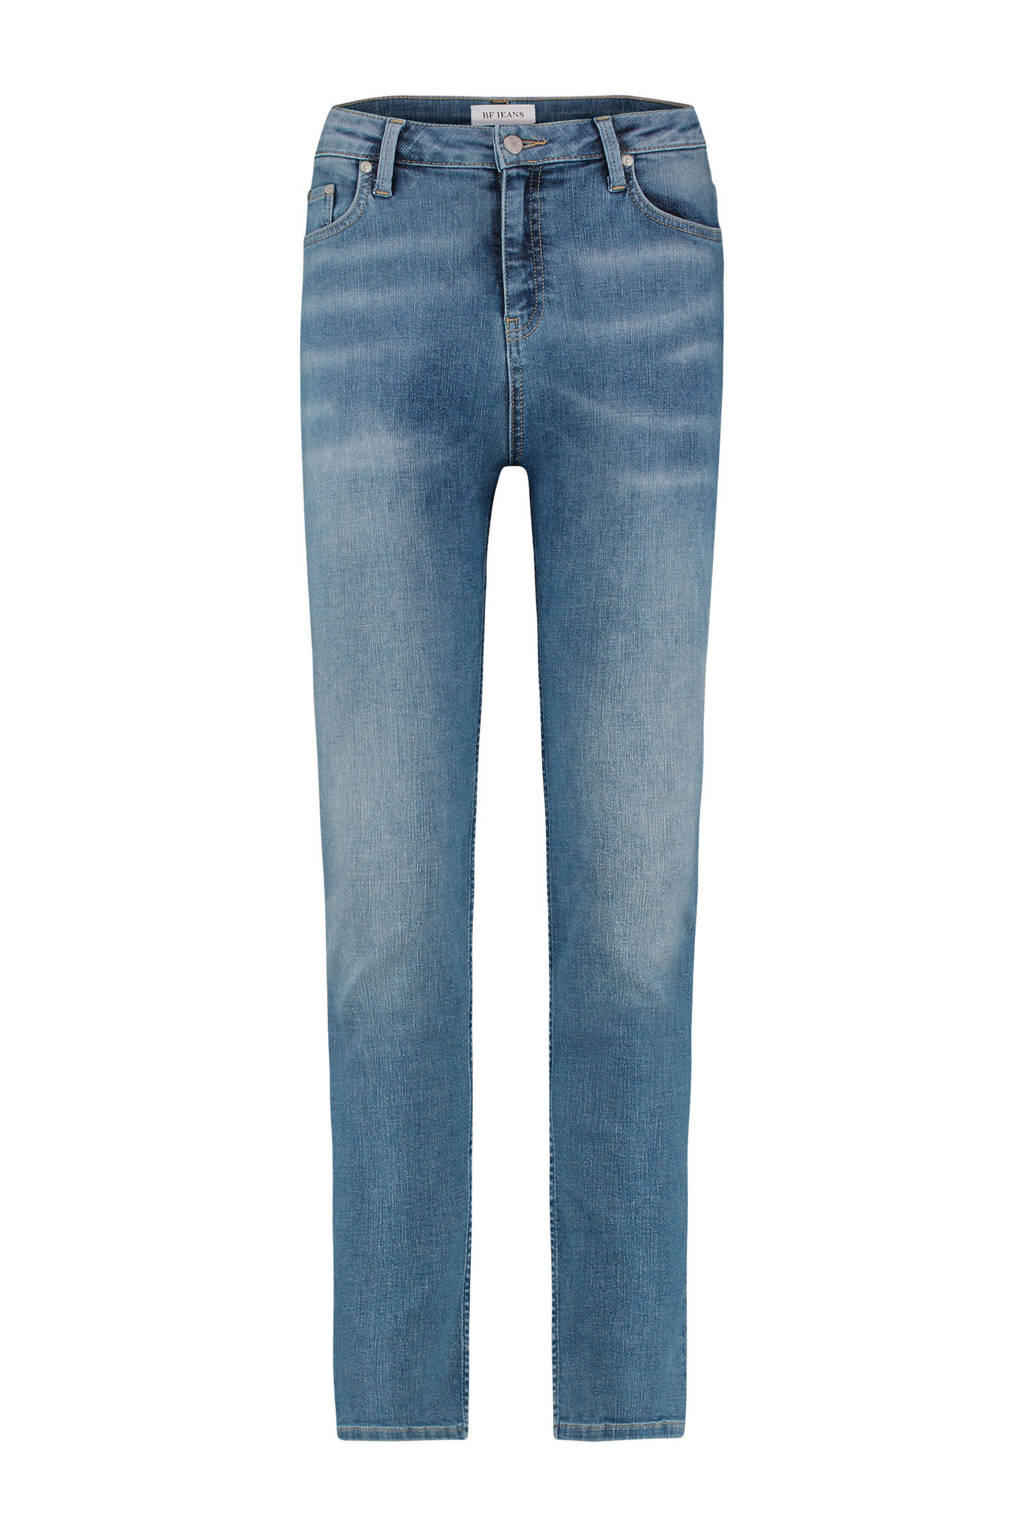 BF Jeans jeans, Deep sky wash